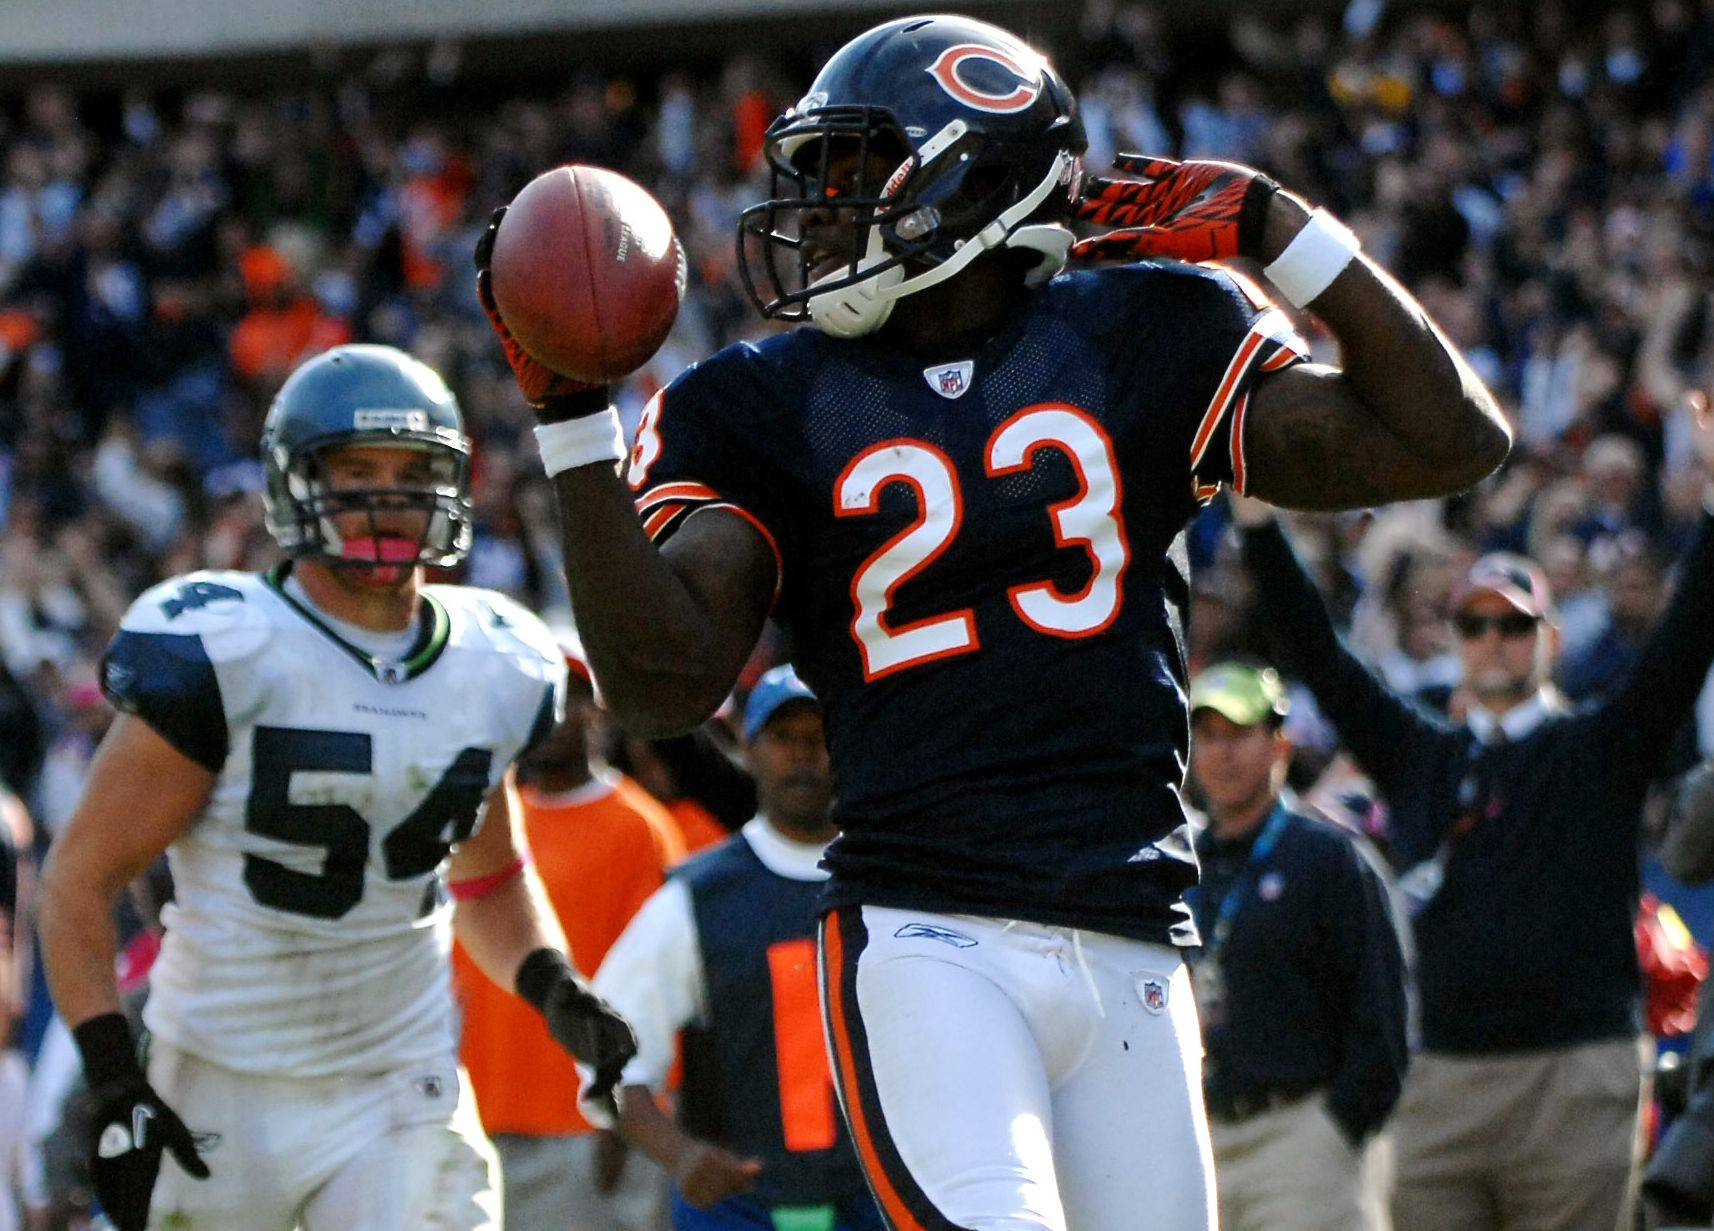 Devin Hester and the Bears special teams will go up against one of the worst coverage units in the NFL when Detroit visits Soldier Field on Monday night.